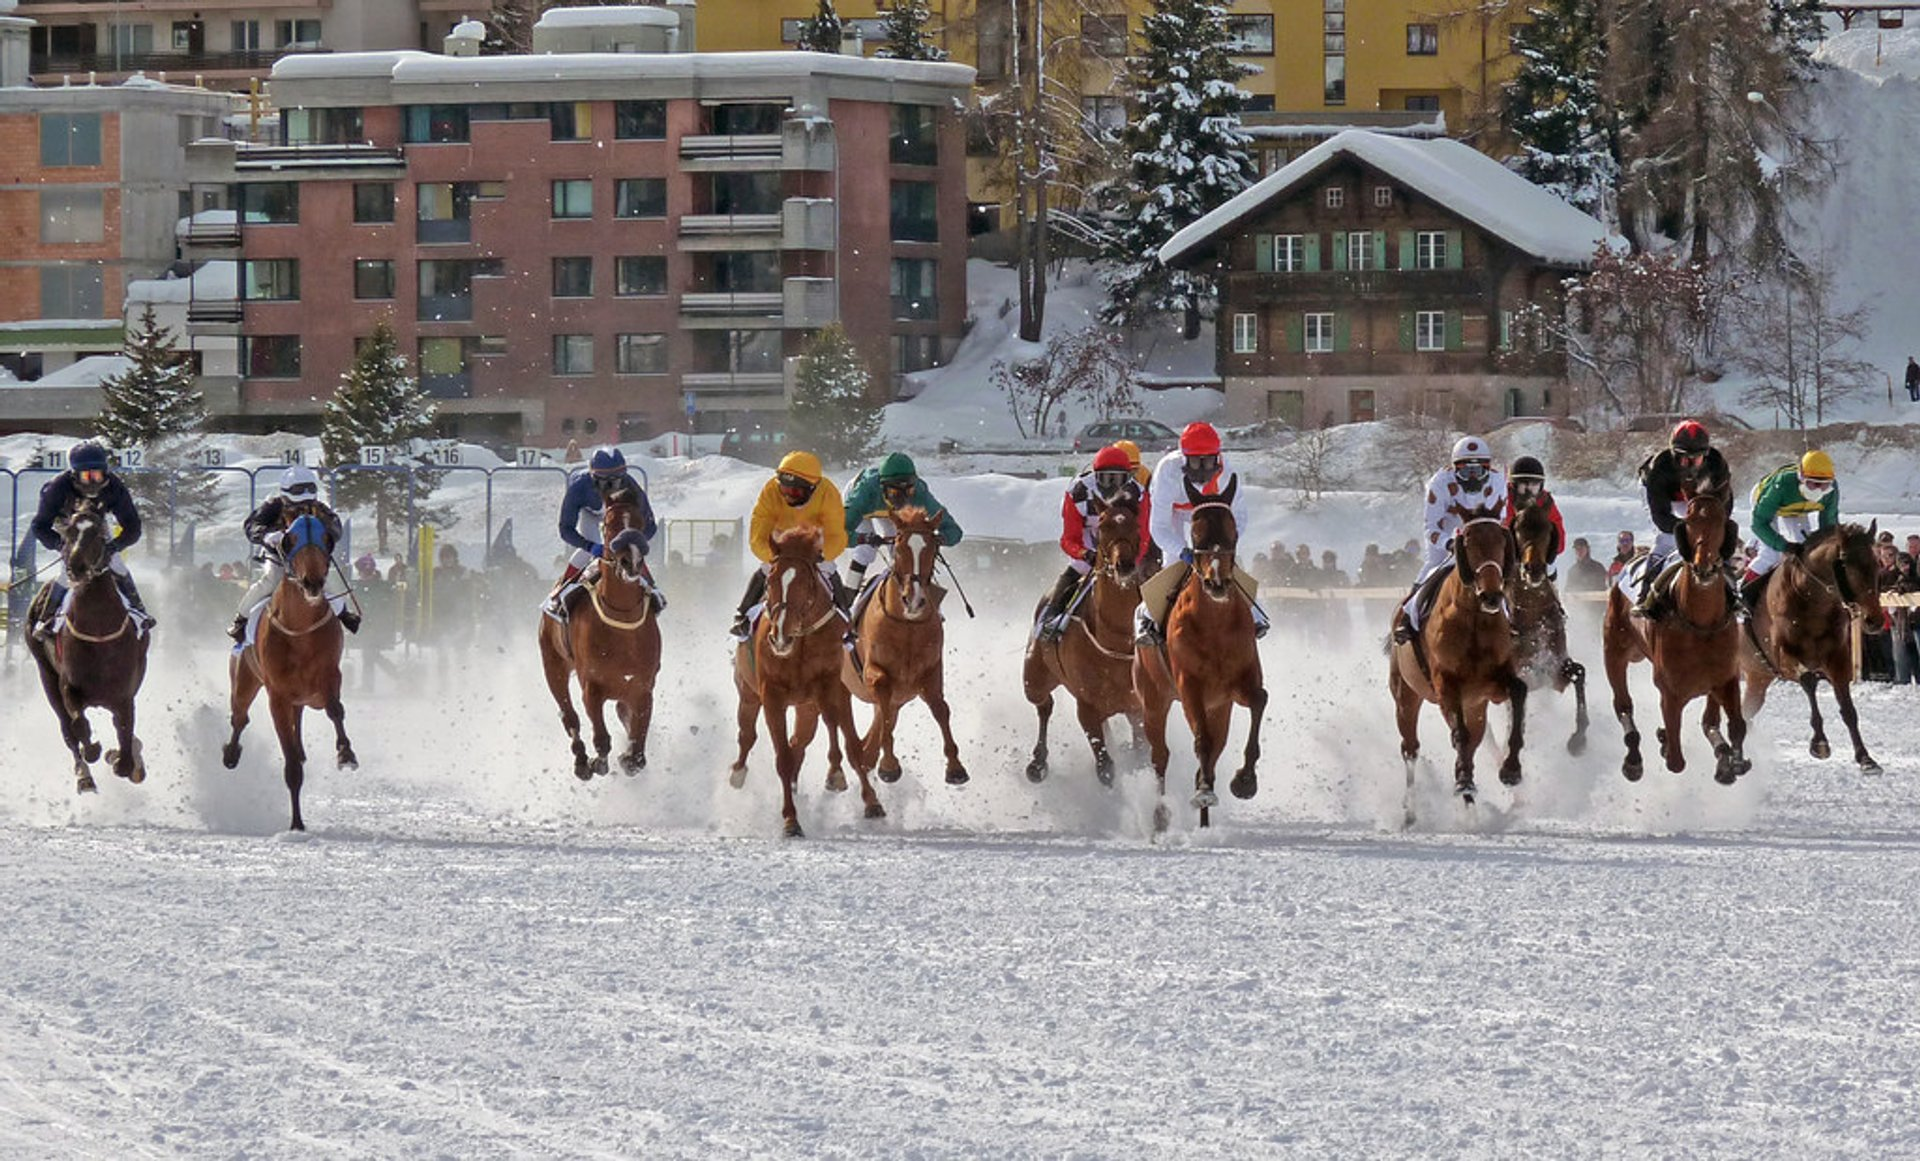 White Turf St. Moritz in Switzerland 2019 - Best Time